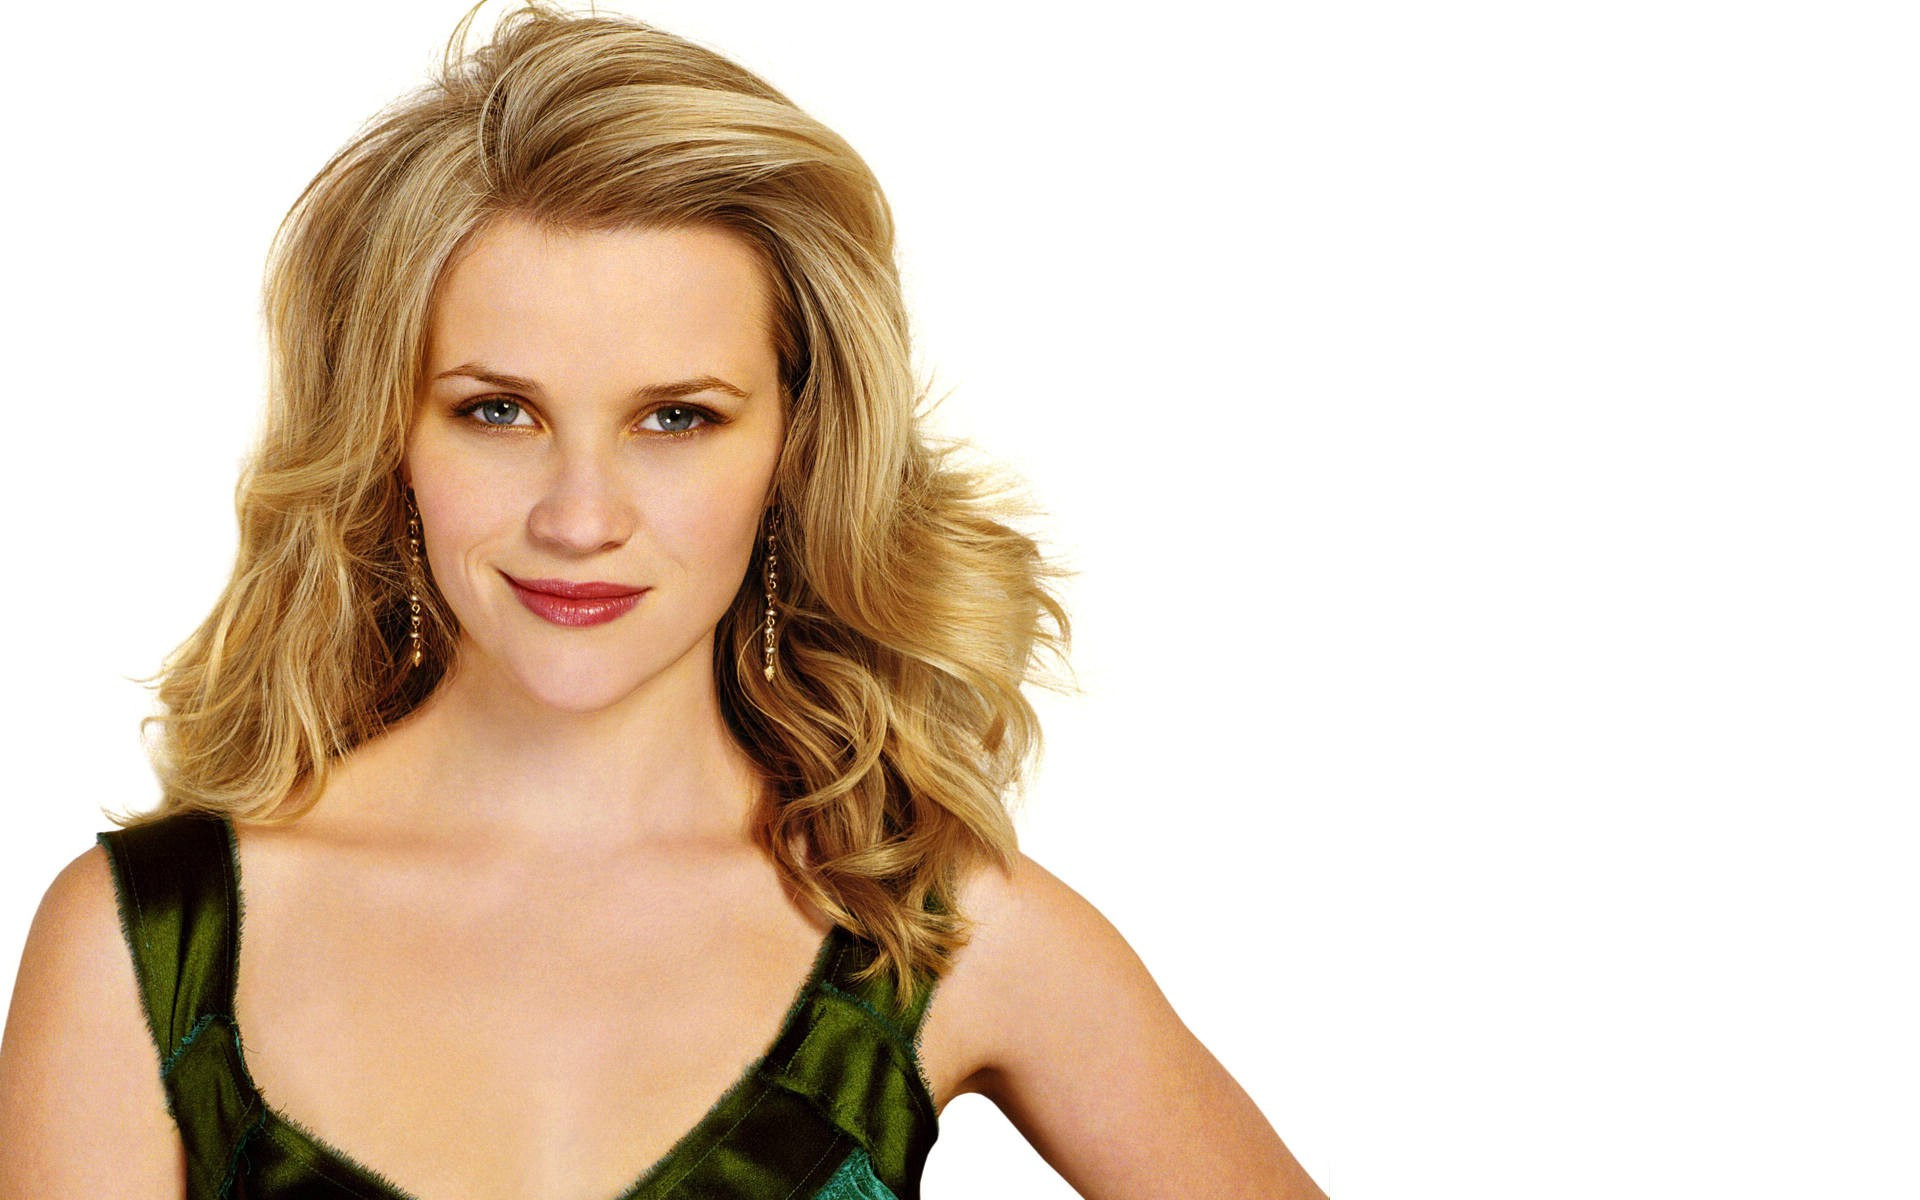 Reese Witherspoon, Reese Witherspoon Wallpaper, Reese Witherspoon Photo, Reese Witherspoon Images